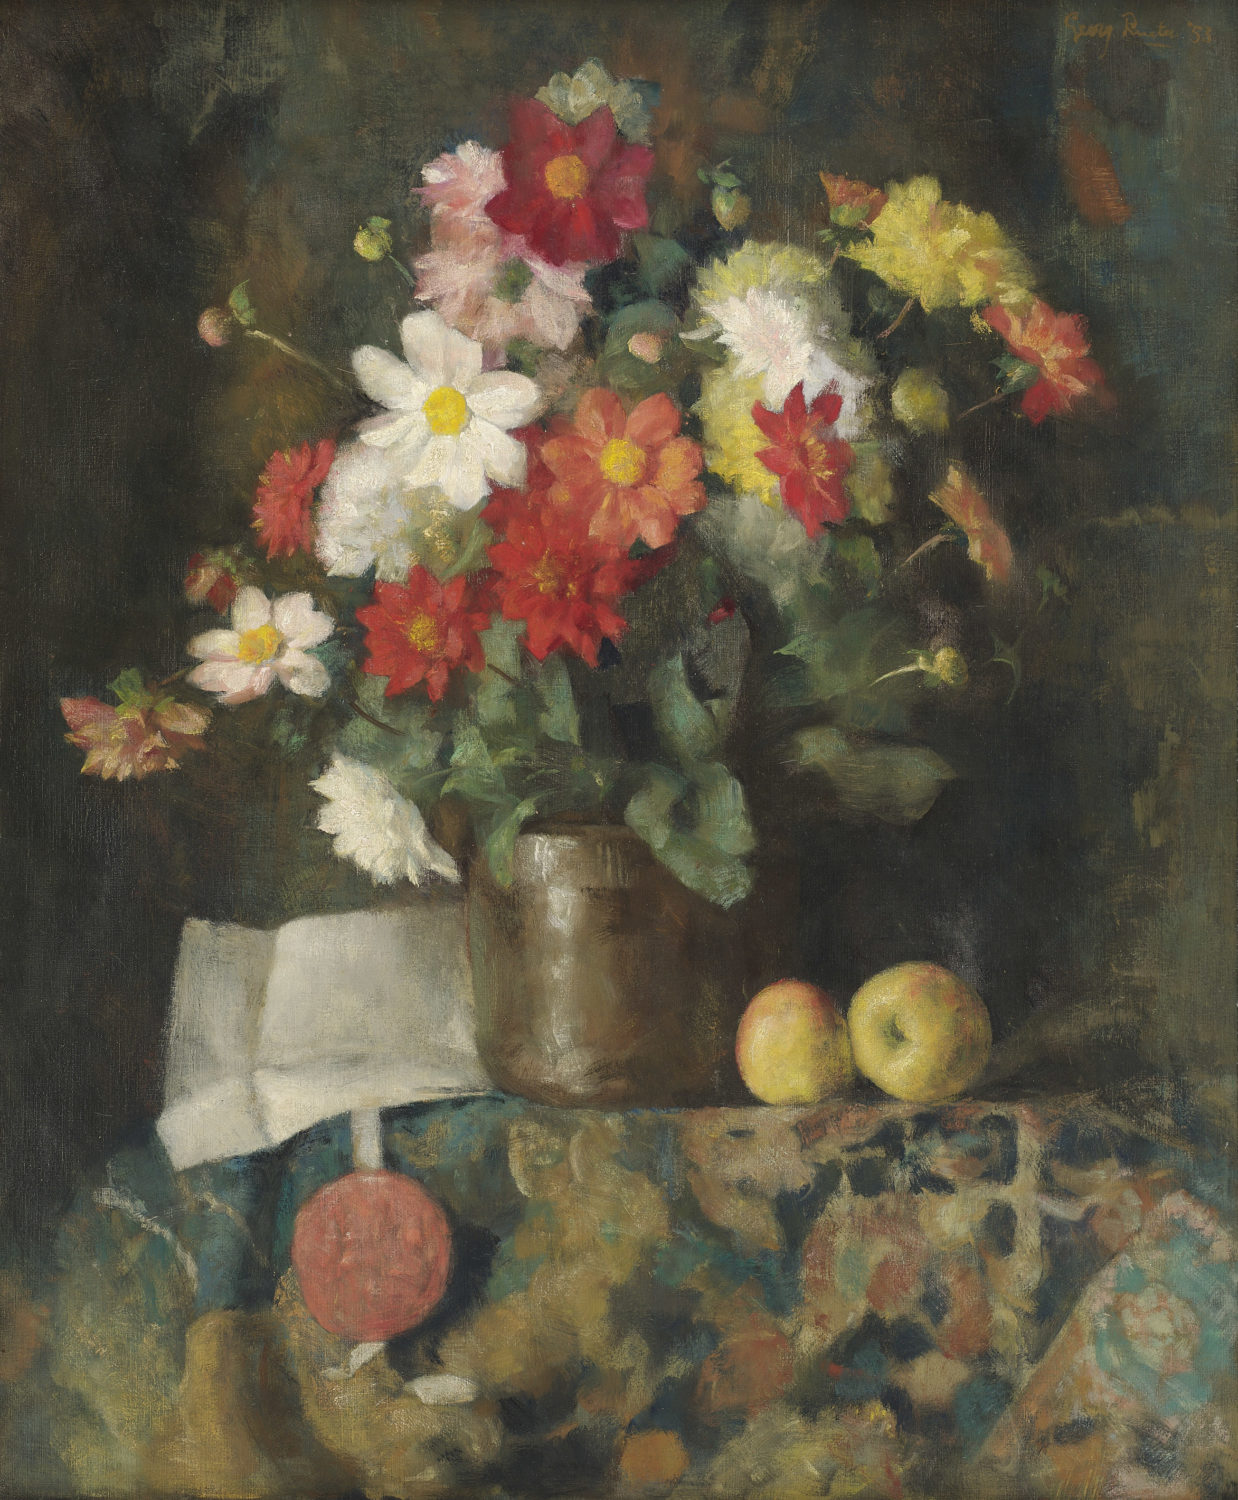 Georg Rueter | A still life with flowers, apples and a certificate | Kunsthandel Bies | Bies Gallery